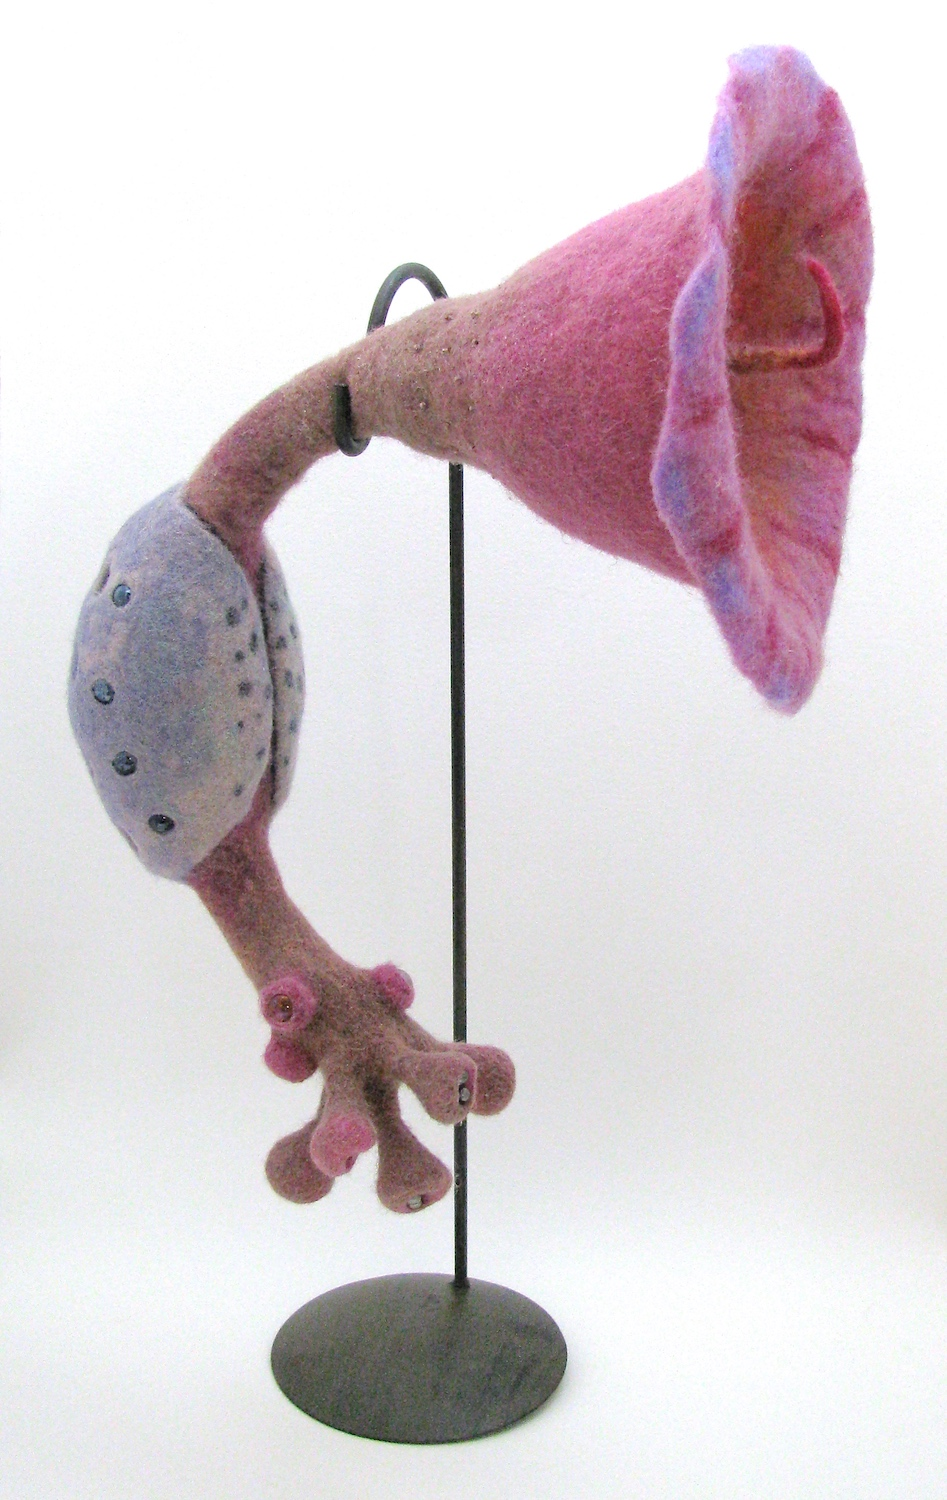 Unlocking the Wool: Sculptural Felting - June 3 - 9, 2018Arrowmont School of Arts and CraftsIn this class, both needle-felting and wet-felting techniques will be employed to create solid three-dimensional objects with an emphasis on form and color. Using wire, found objects and wool itself as armature, students interested in creating dynamic sculpture will explore their own designs. Wool varieties, tools, surface design and finishing techniques will be covered. Needle-felters wanting to try wet-felting or vice versa are encouraged to attend though all skill levels are welcome. Note: Both techniques require repetitive arm & hand motion.